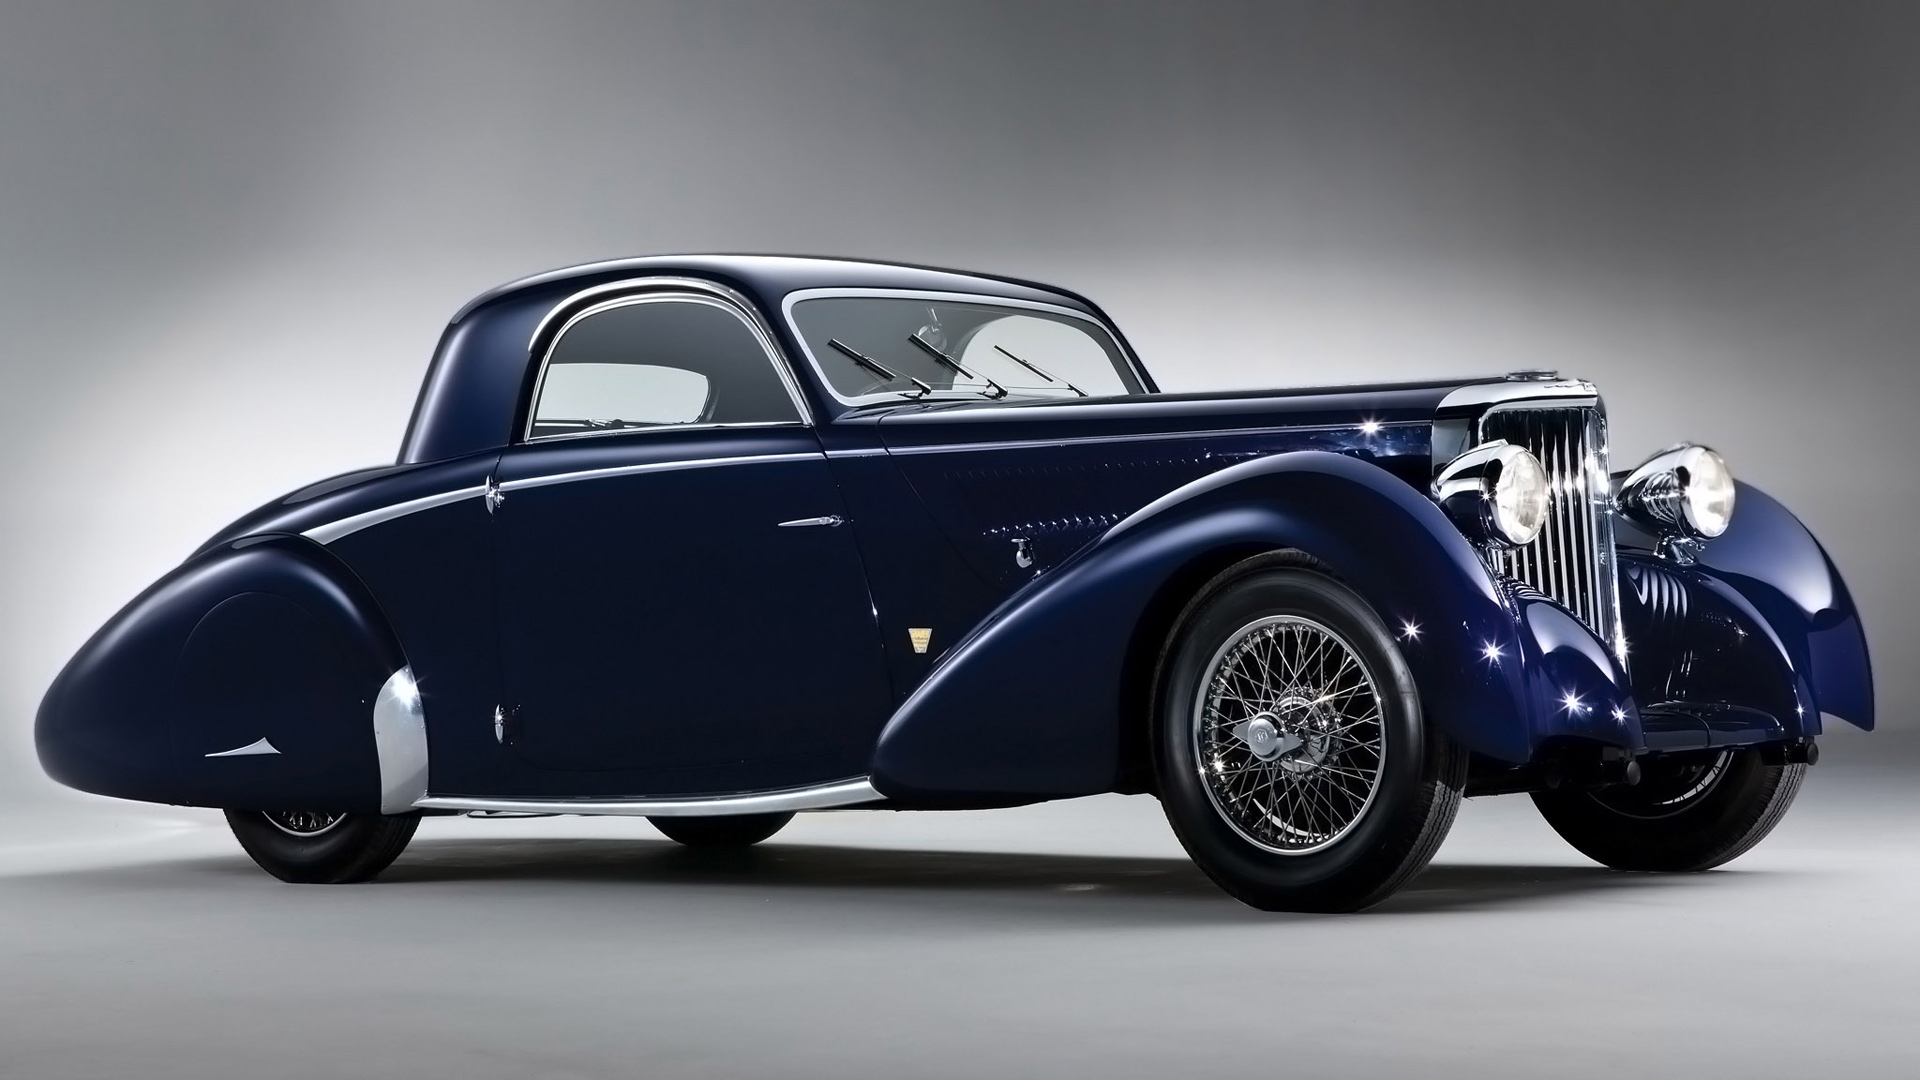 Top Old Classic Cars Wallpaper Images for Pinterest 1920x1080